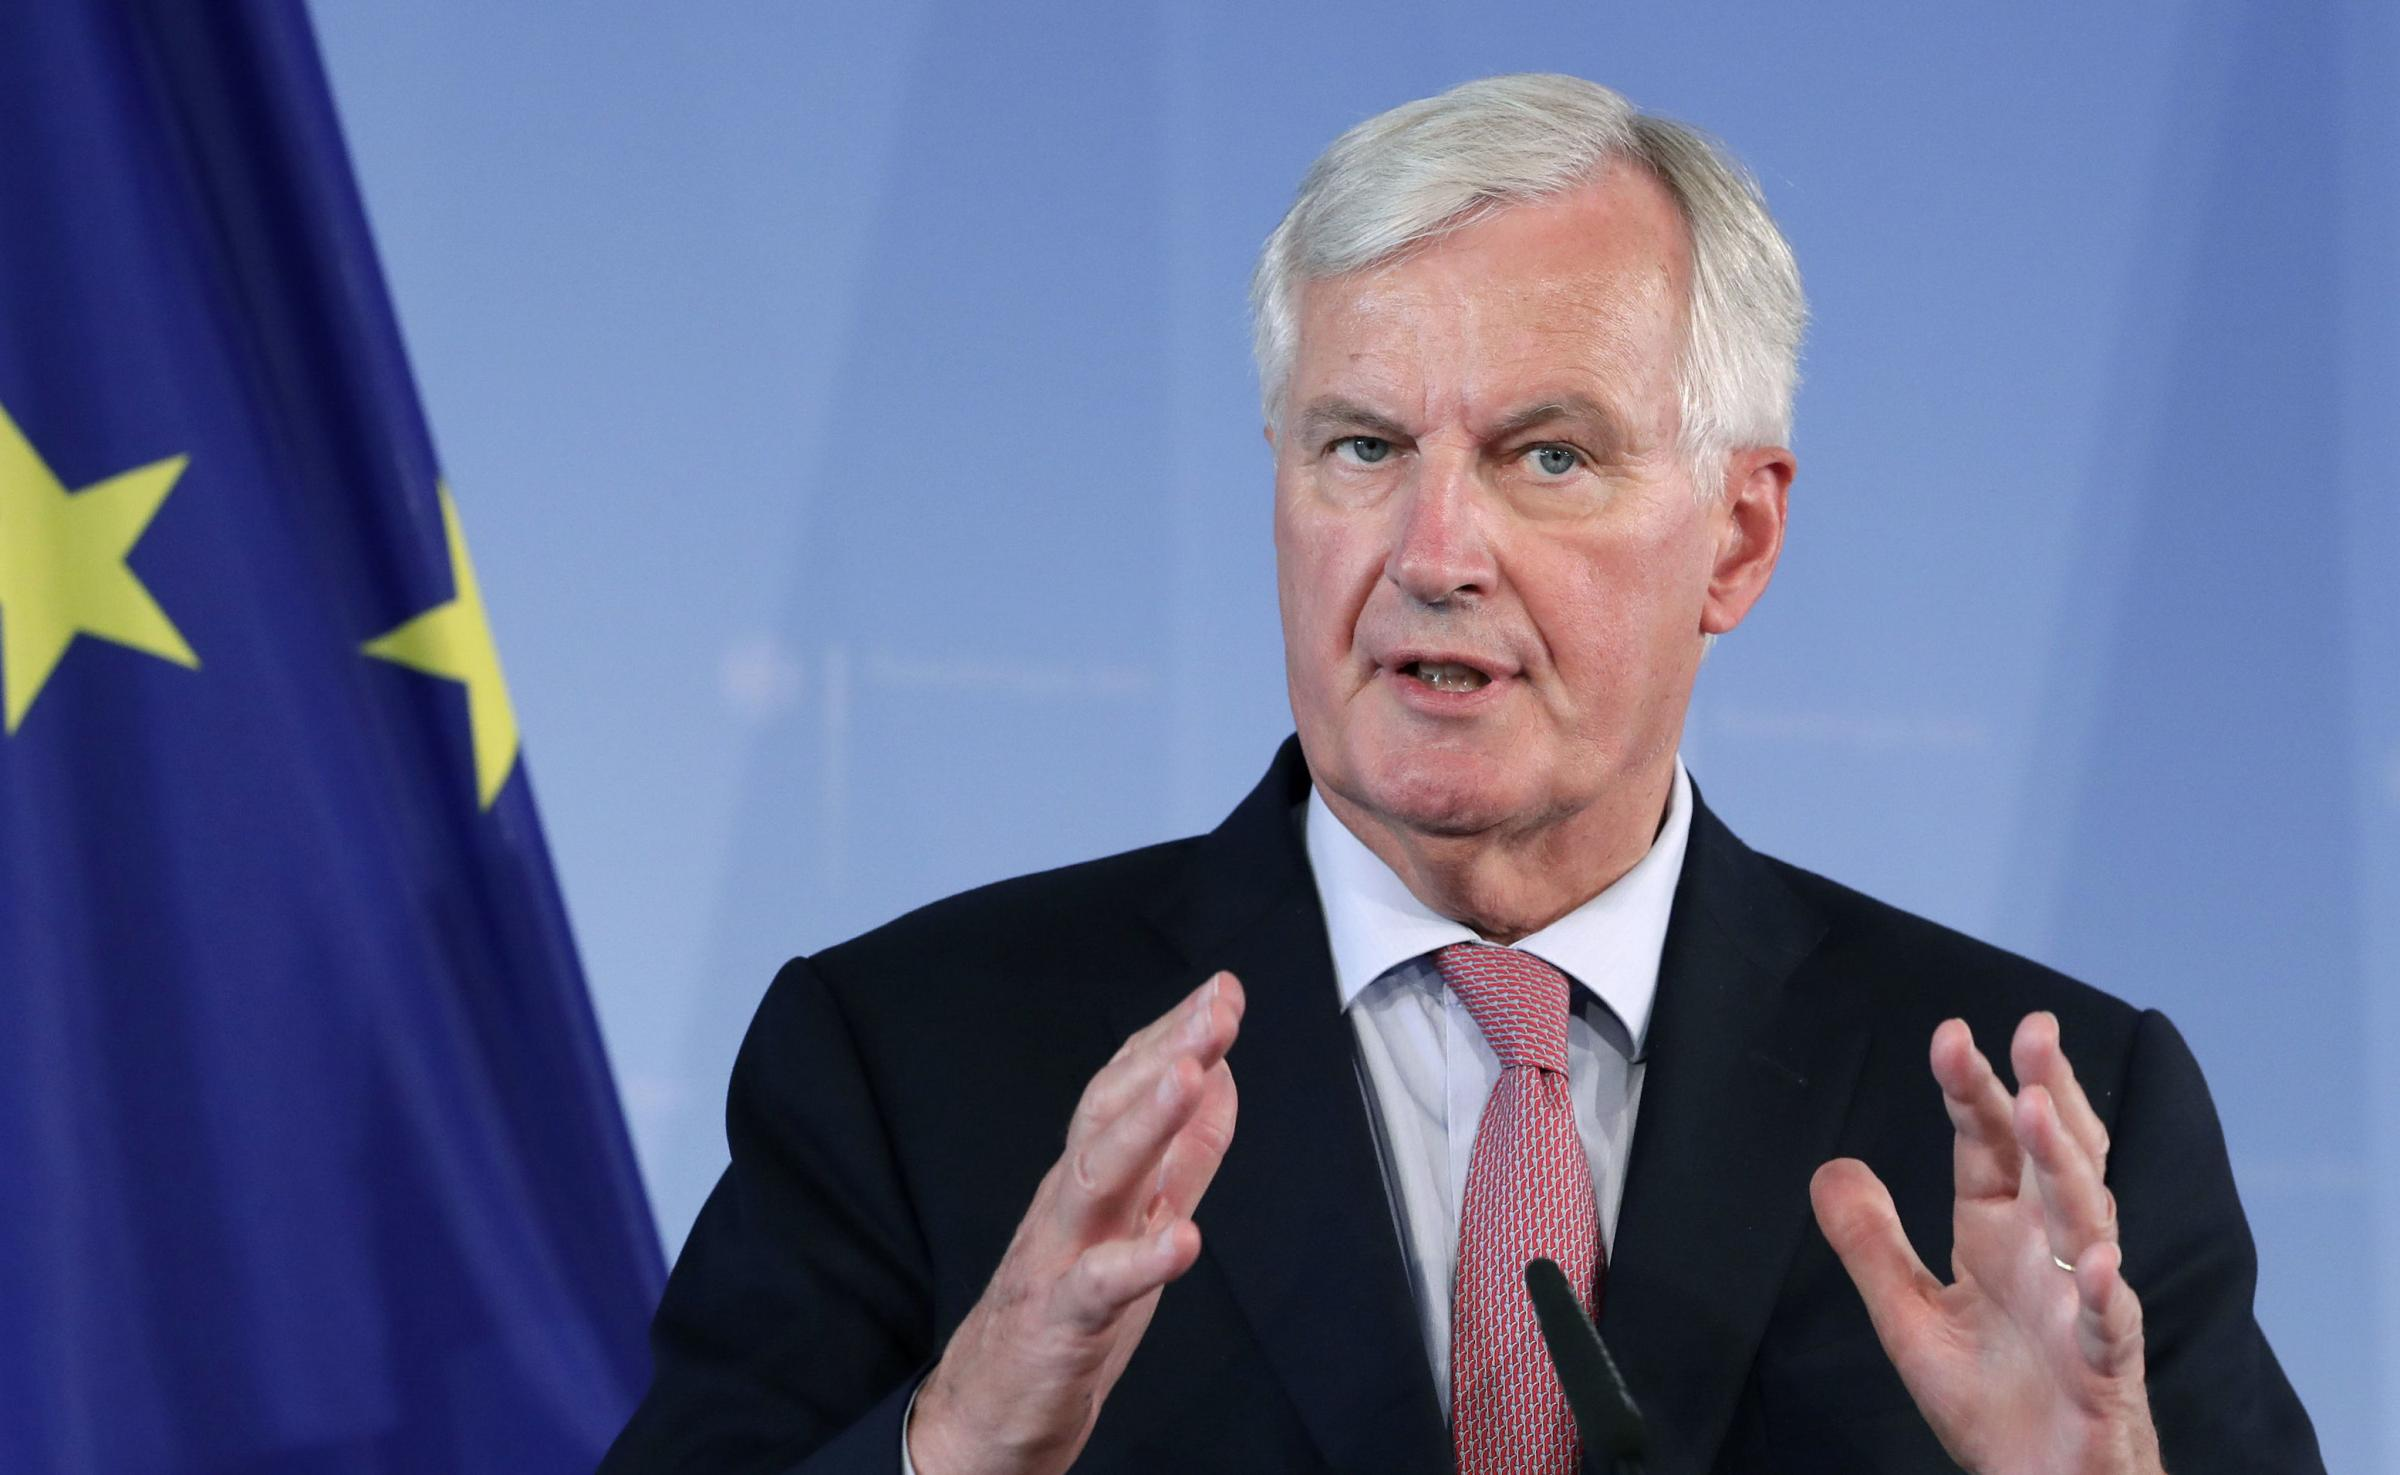 Barnier said the UK could agree a deal with Brussels in two months